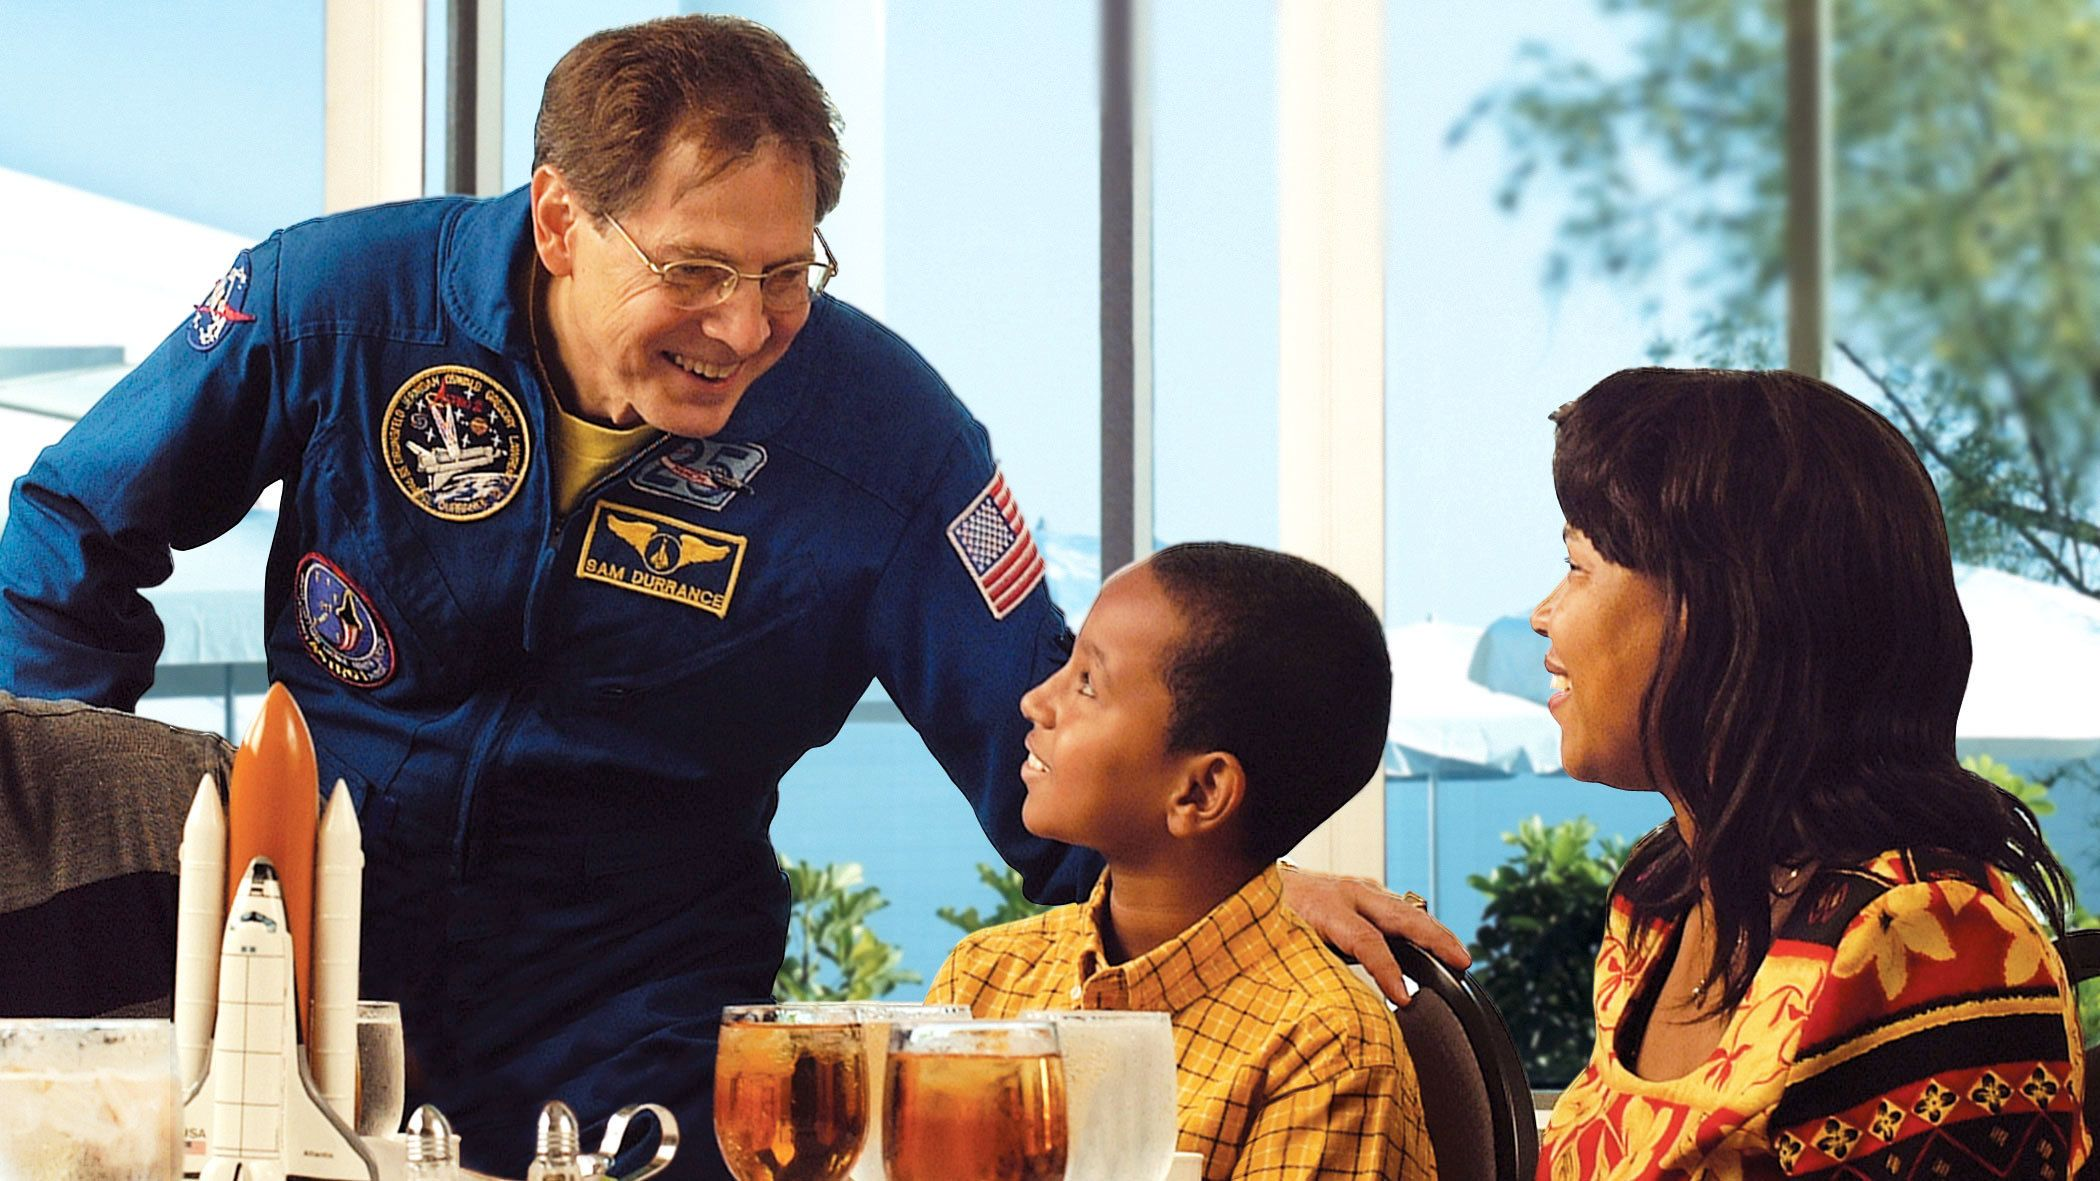 Astronaut talking to dining guests in Orlando.